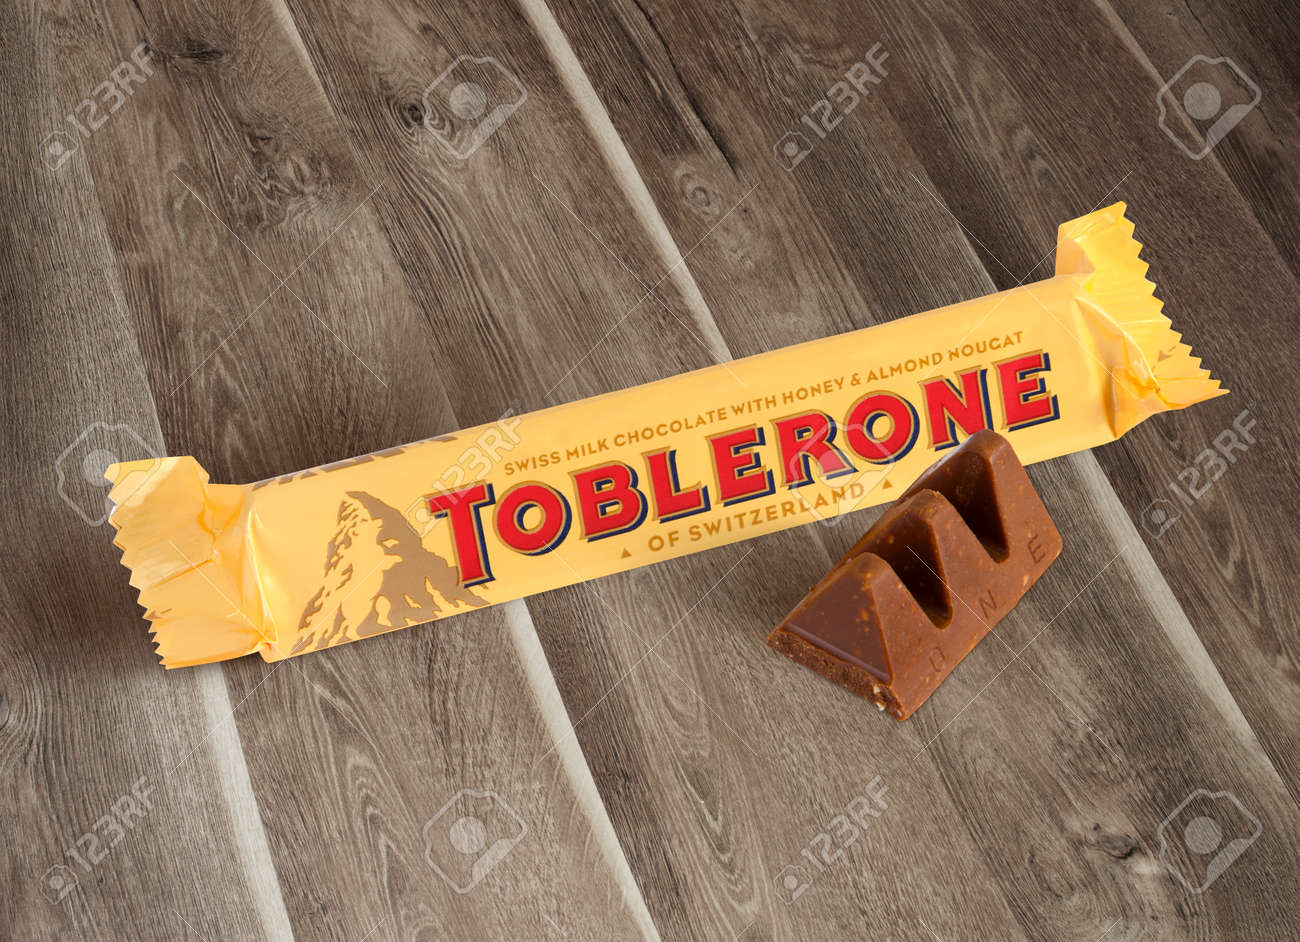 Chisinau, Moldova - June 14, 2016: A bar of Toblerone - Swiss milk chocolate with honey and almond nougat on a wood background. With clipping path. - 62366458